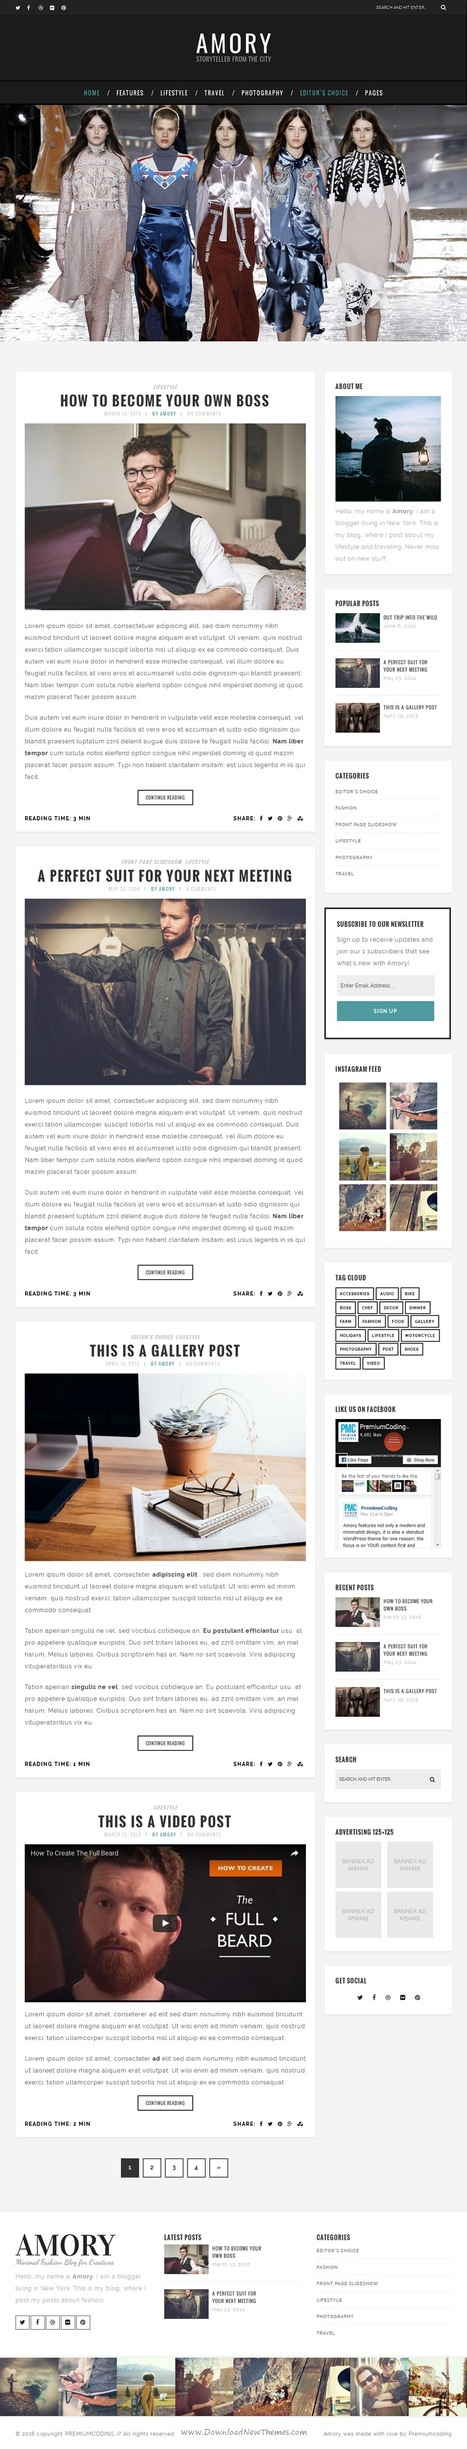 Amory - Premium WordPress Blog Theme for Creatives Download | Creative Themes and Template Download | Scoop.it